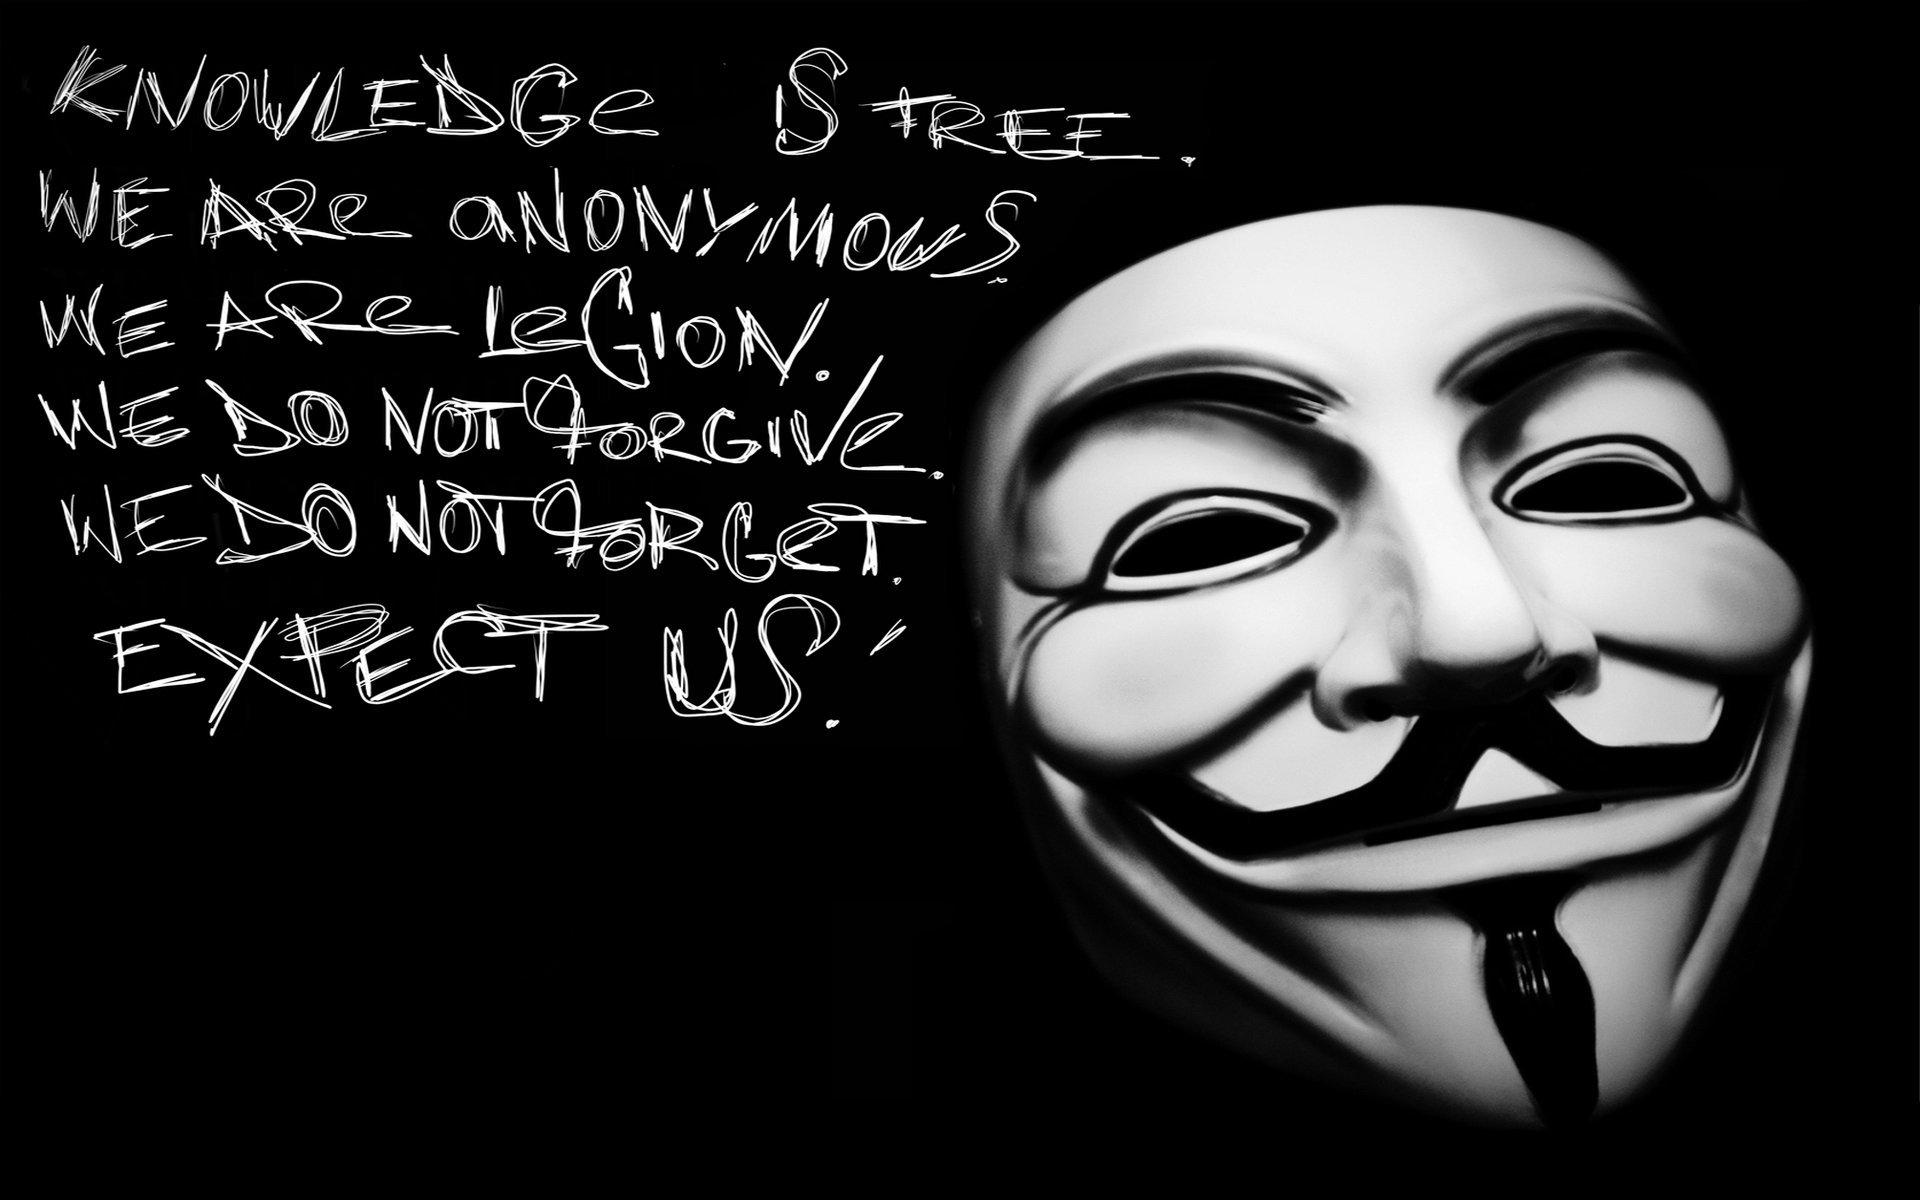 Download Cool Anonymous Hackers Wallpaper  Full HD Wallpapers 1920x1200